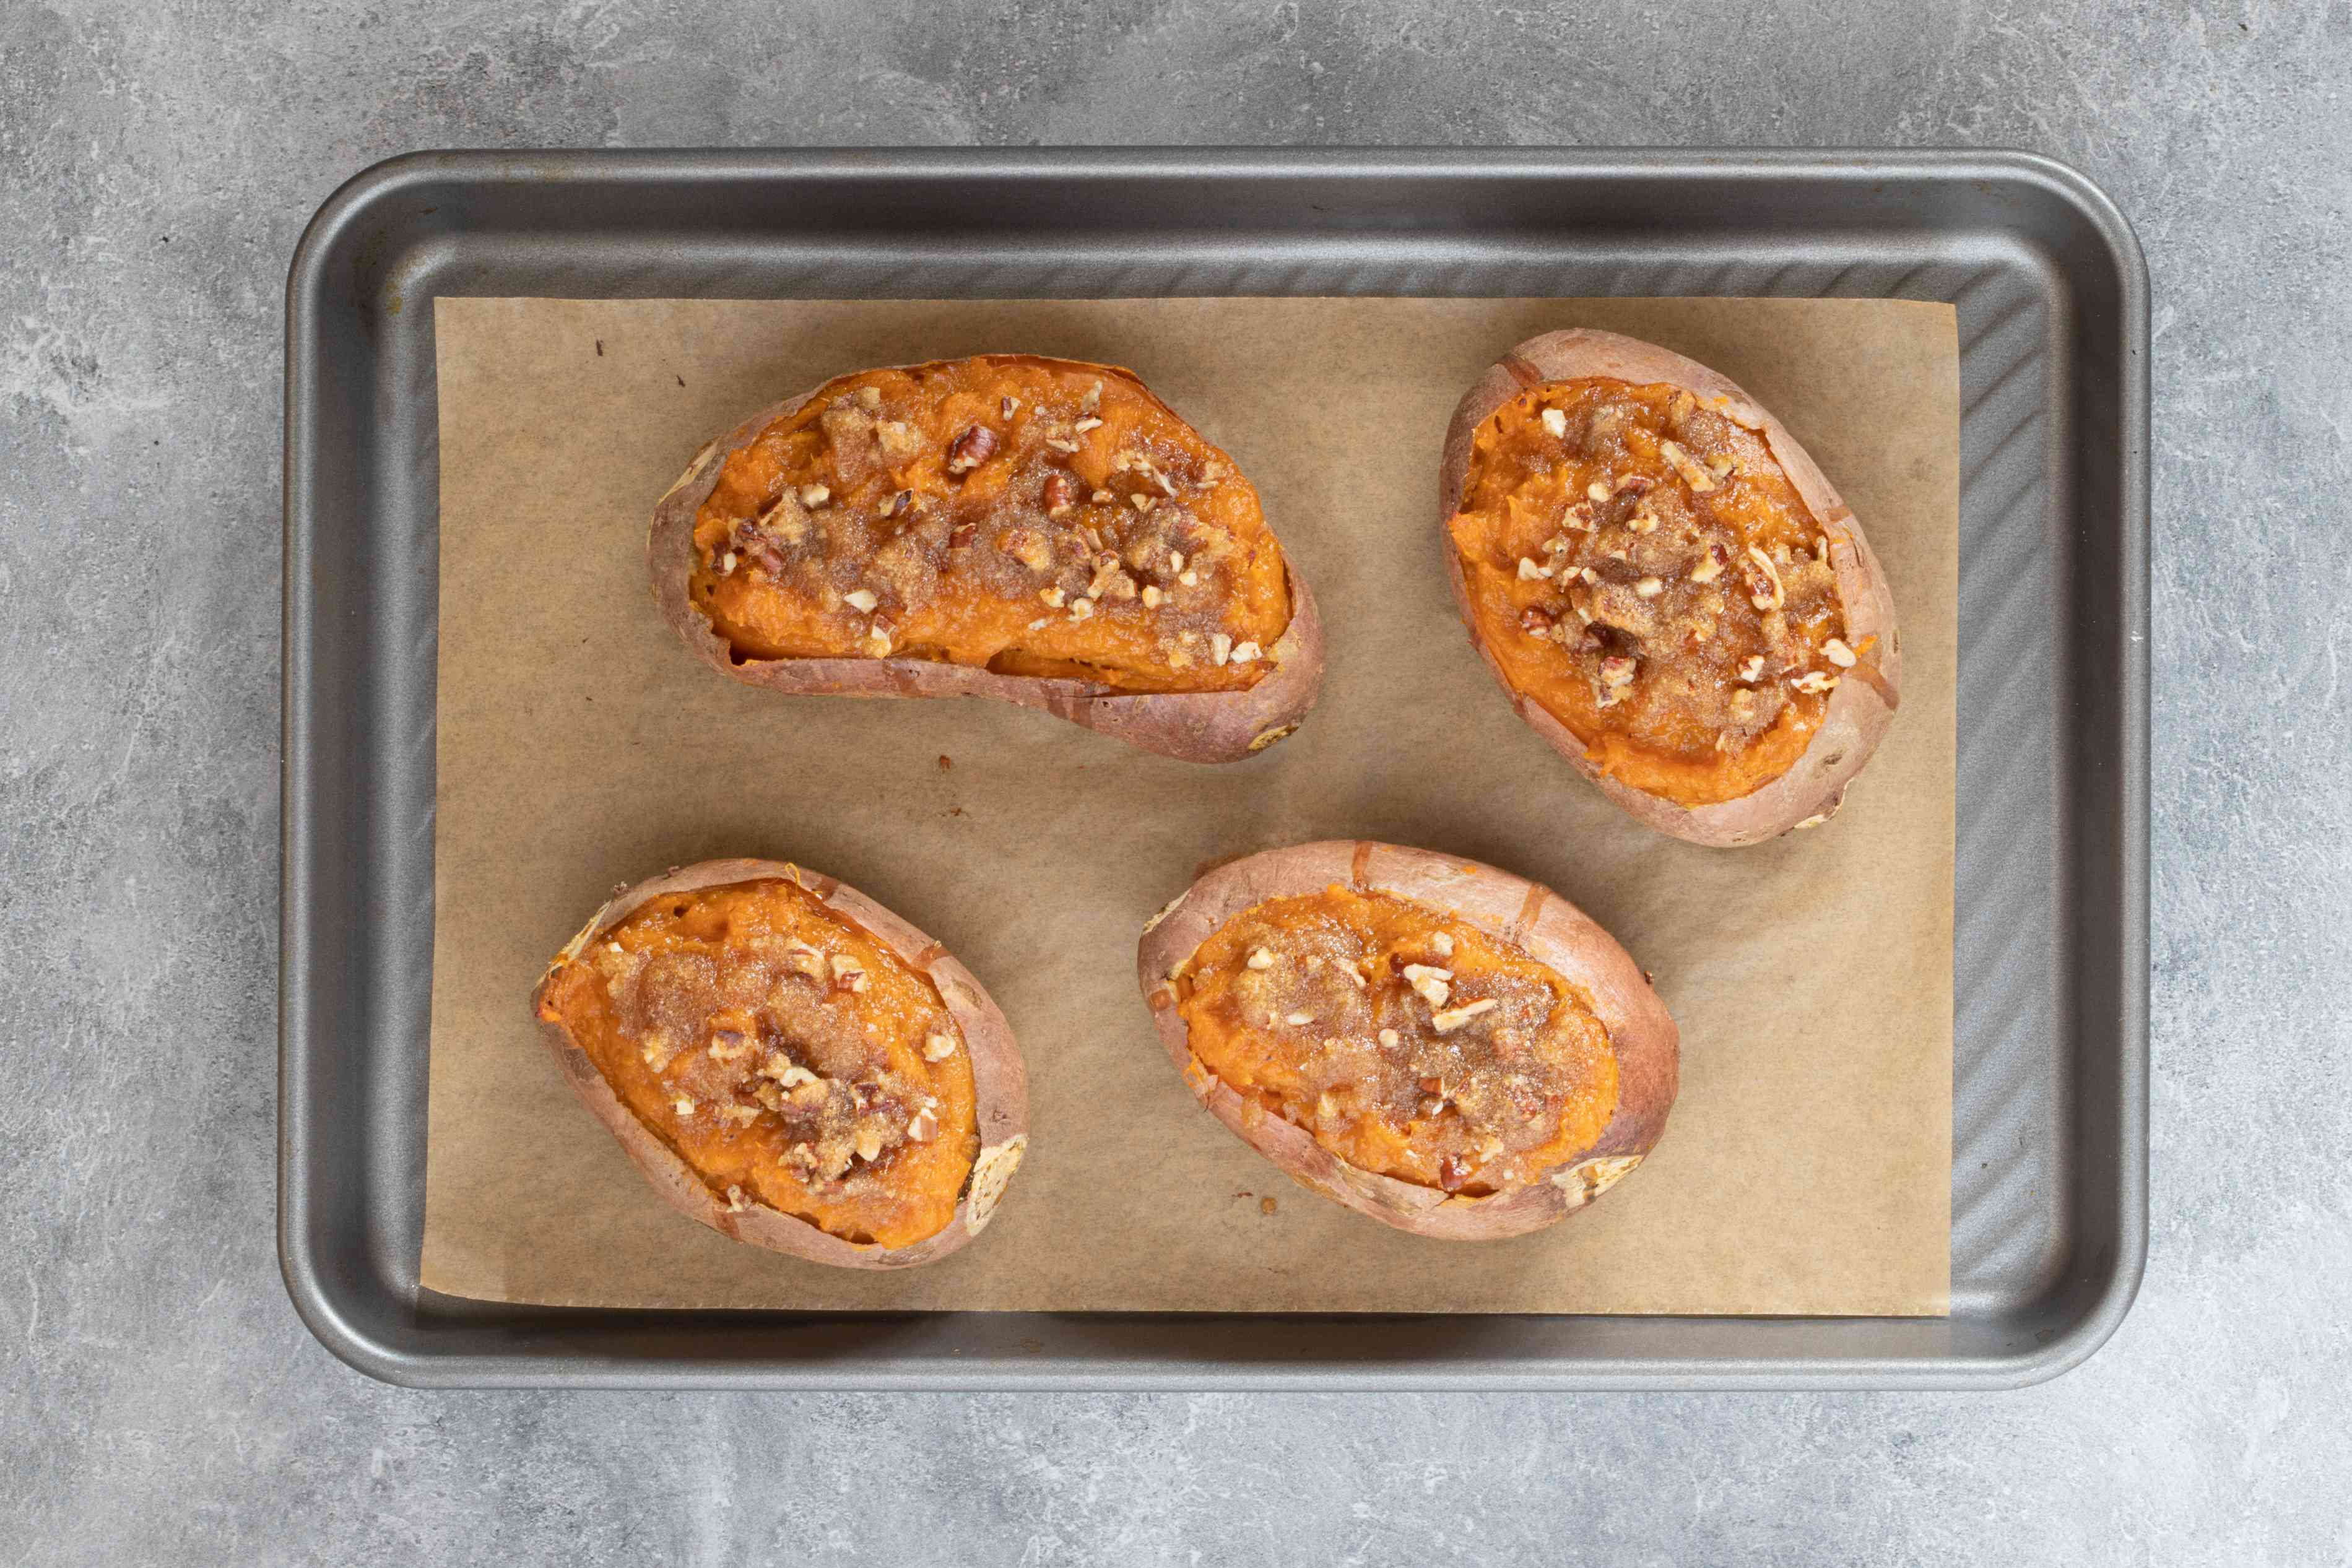 twice-baked sweet potatoes out of the oven